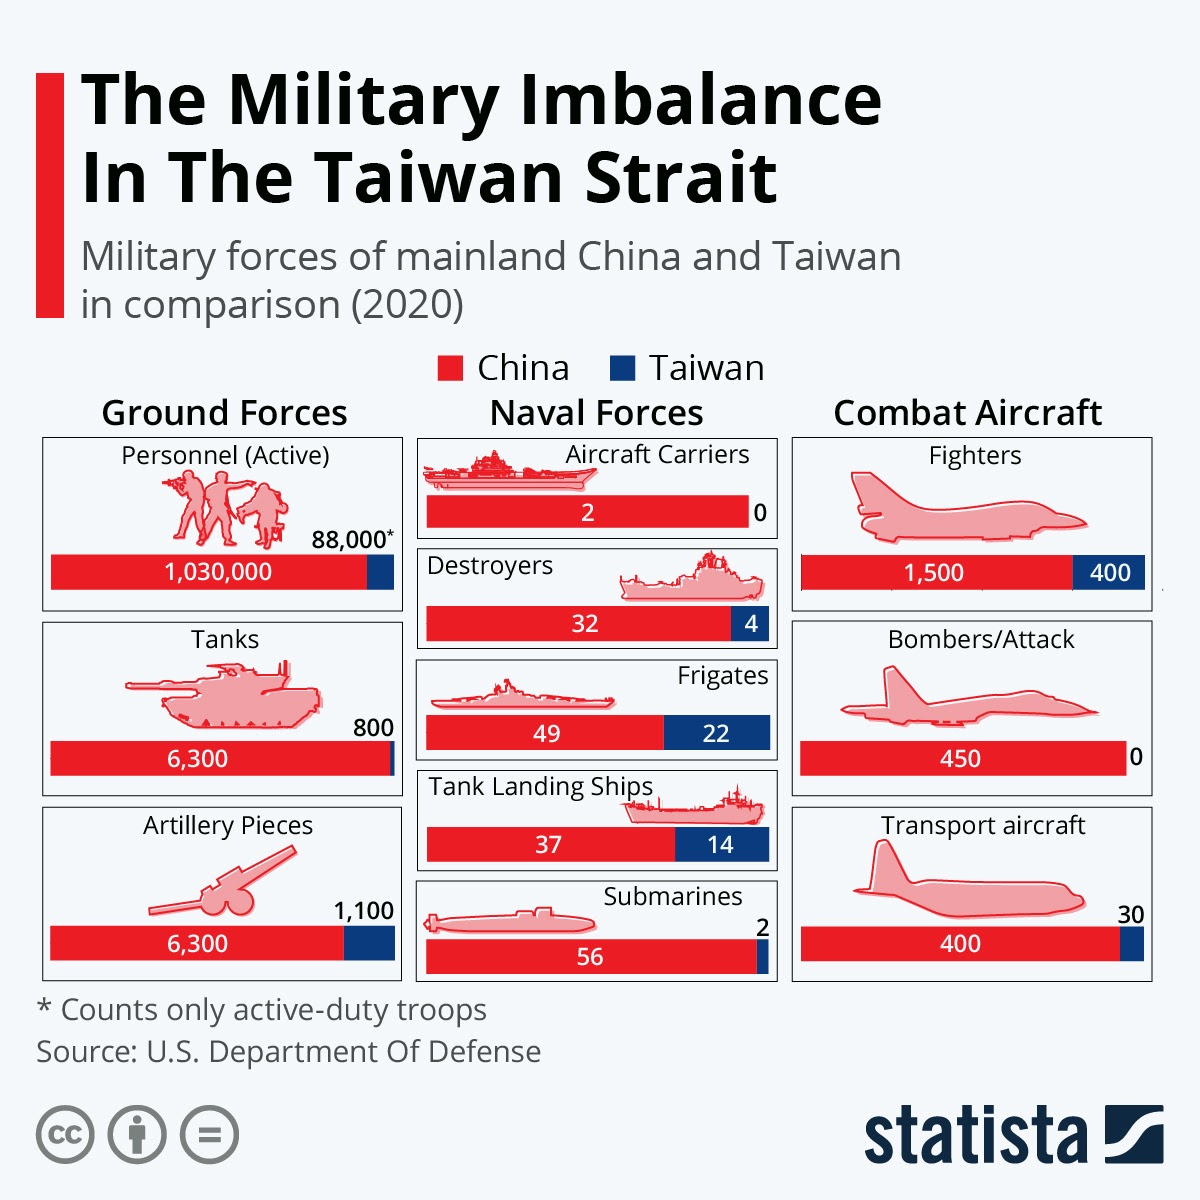 The Military Imbalance In The Taiwan Strait #infographic